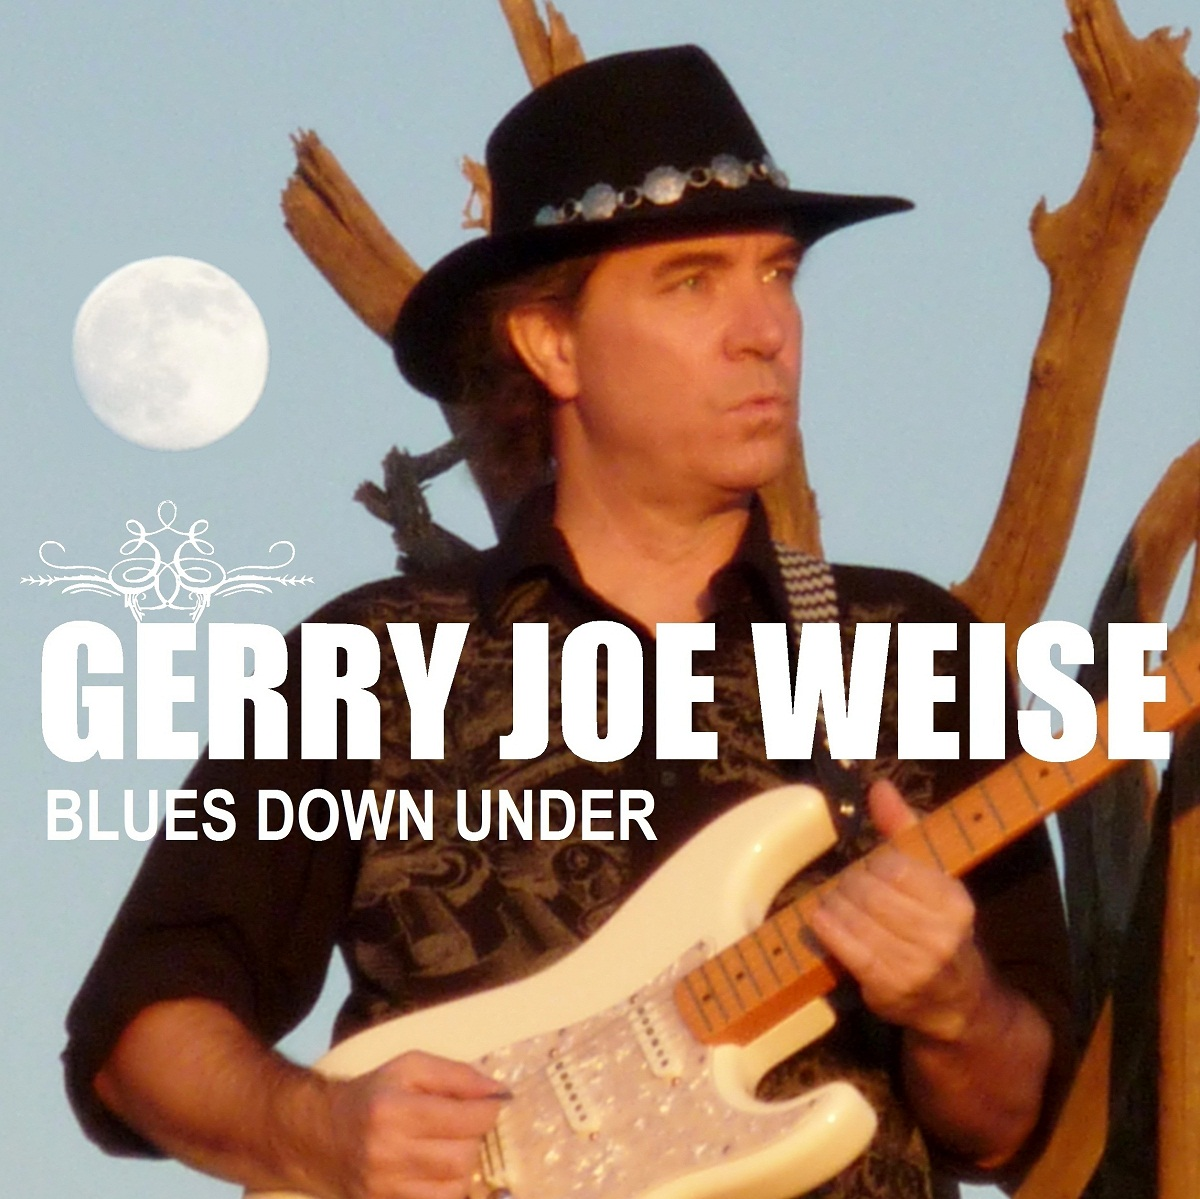 Blues Down Under, 2009 album